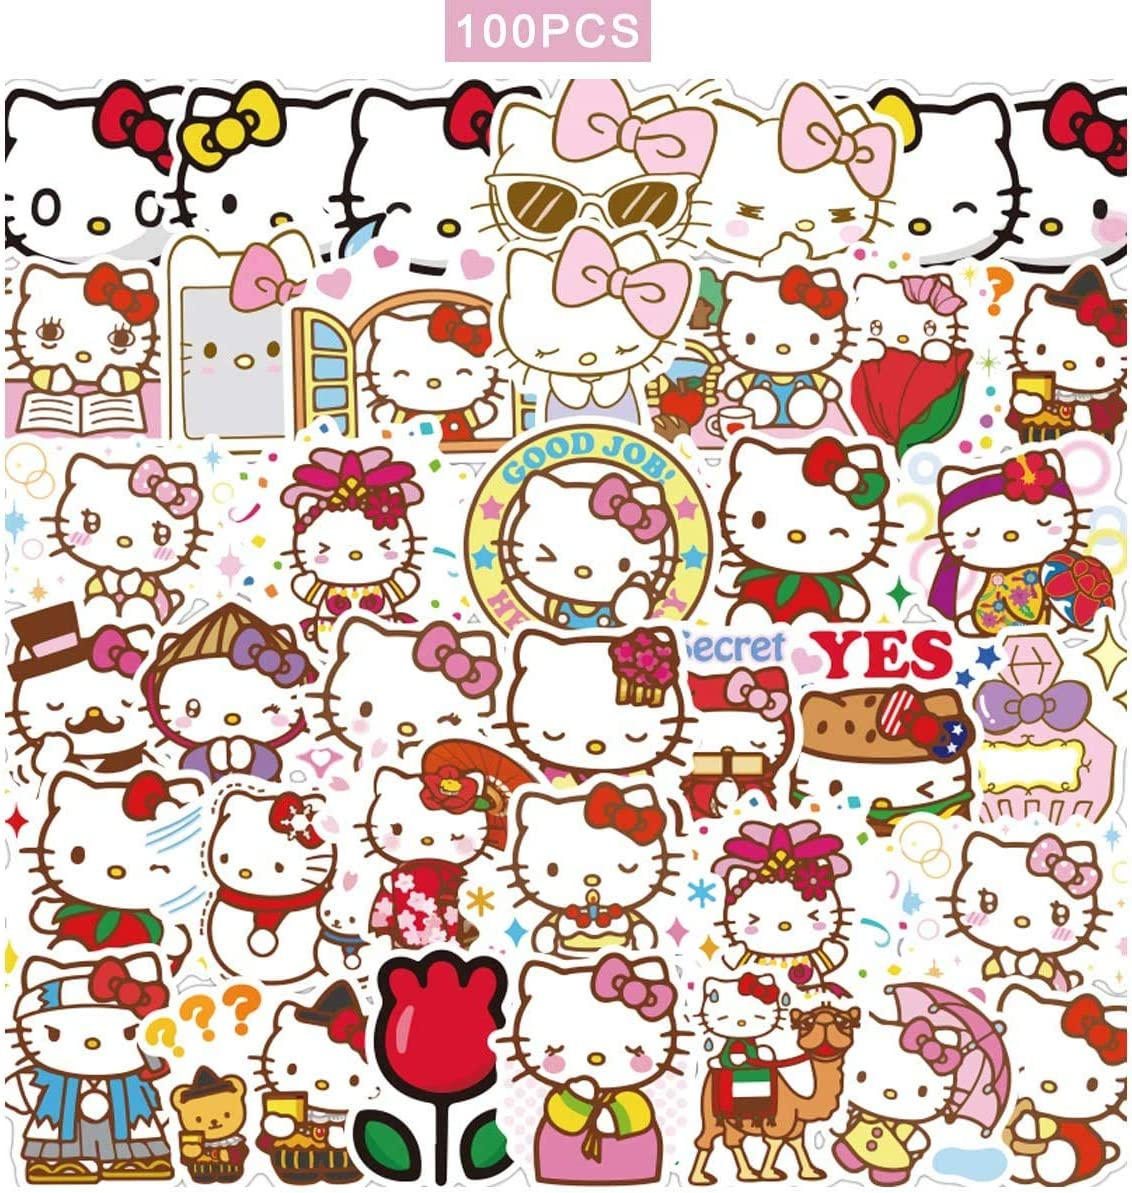 Your Store 100pcs Hello Kitty Stickers Japanese Sanrio Kawaii Stickers Aesthetic Vinyl Stickers for Water Bottles Skateboard Laptop for Kids Adults Teens Waterproof Sticker Packs